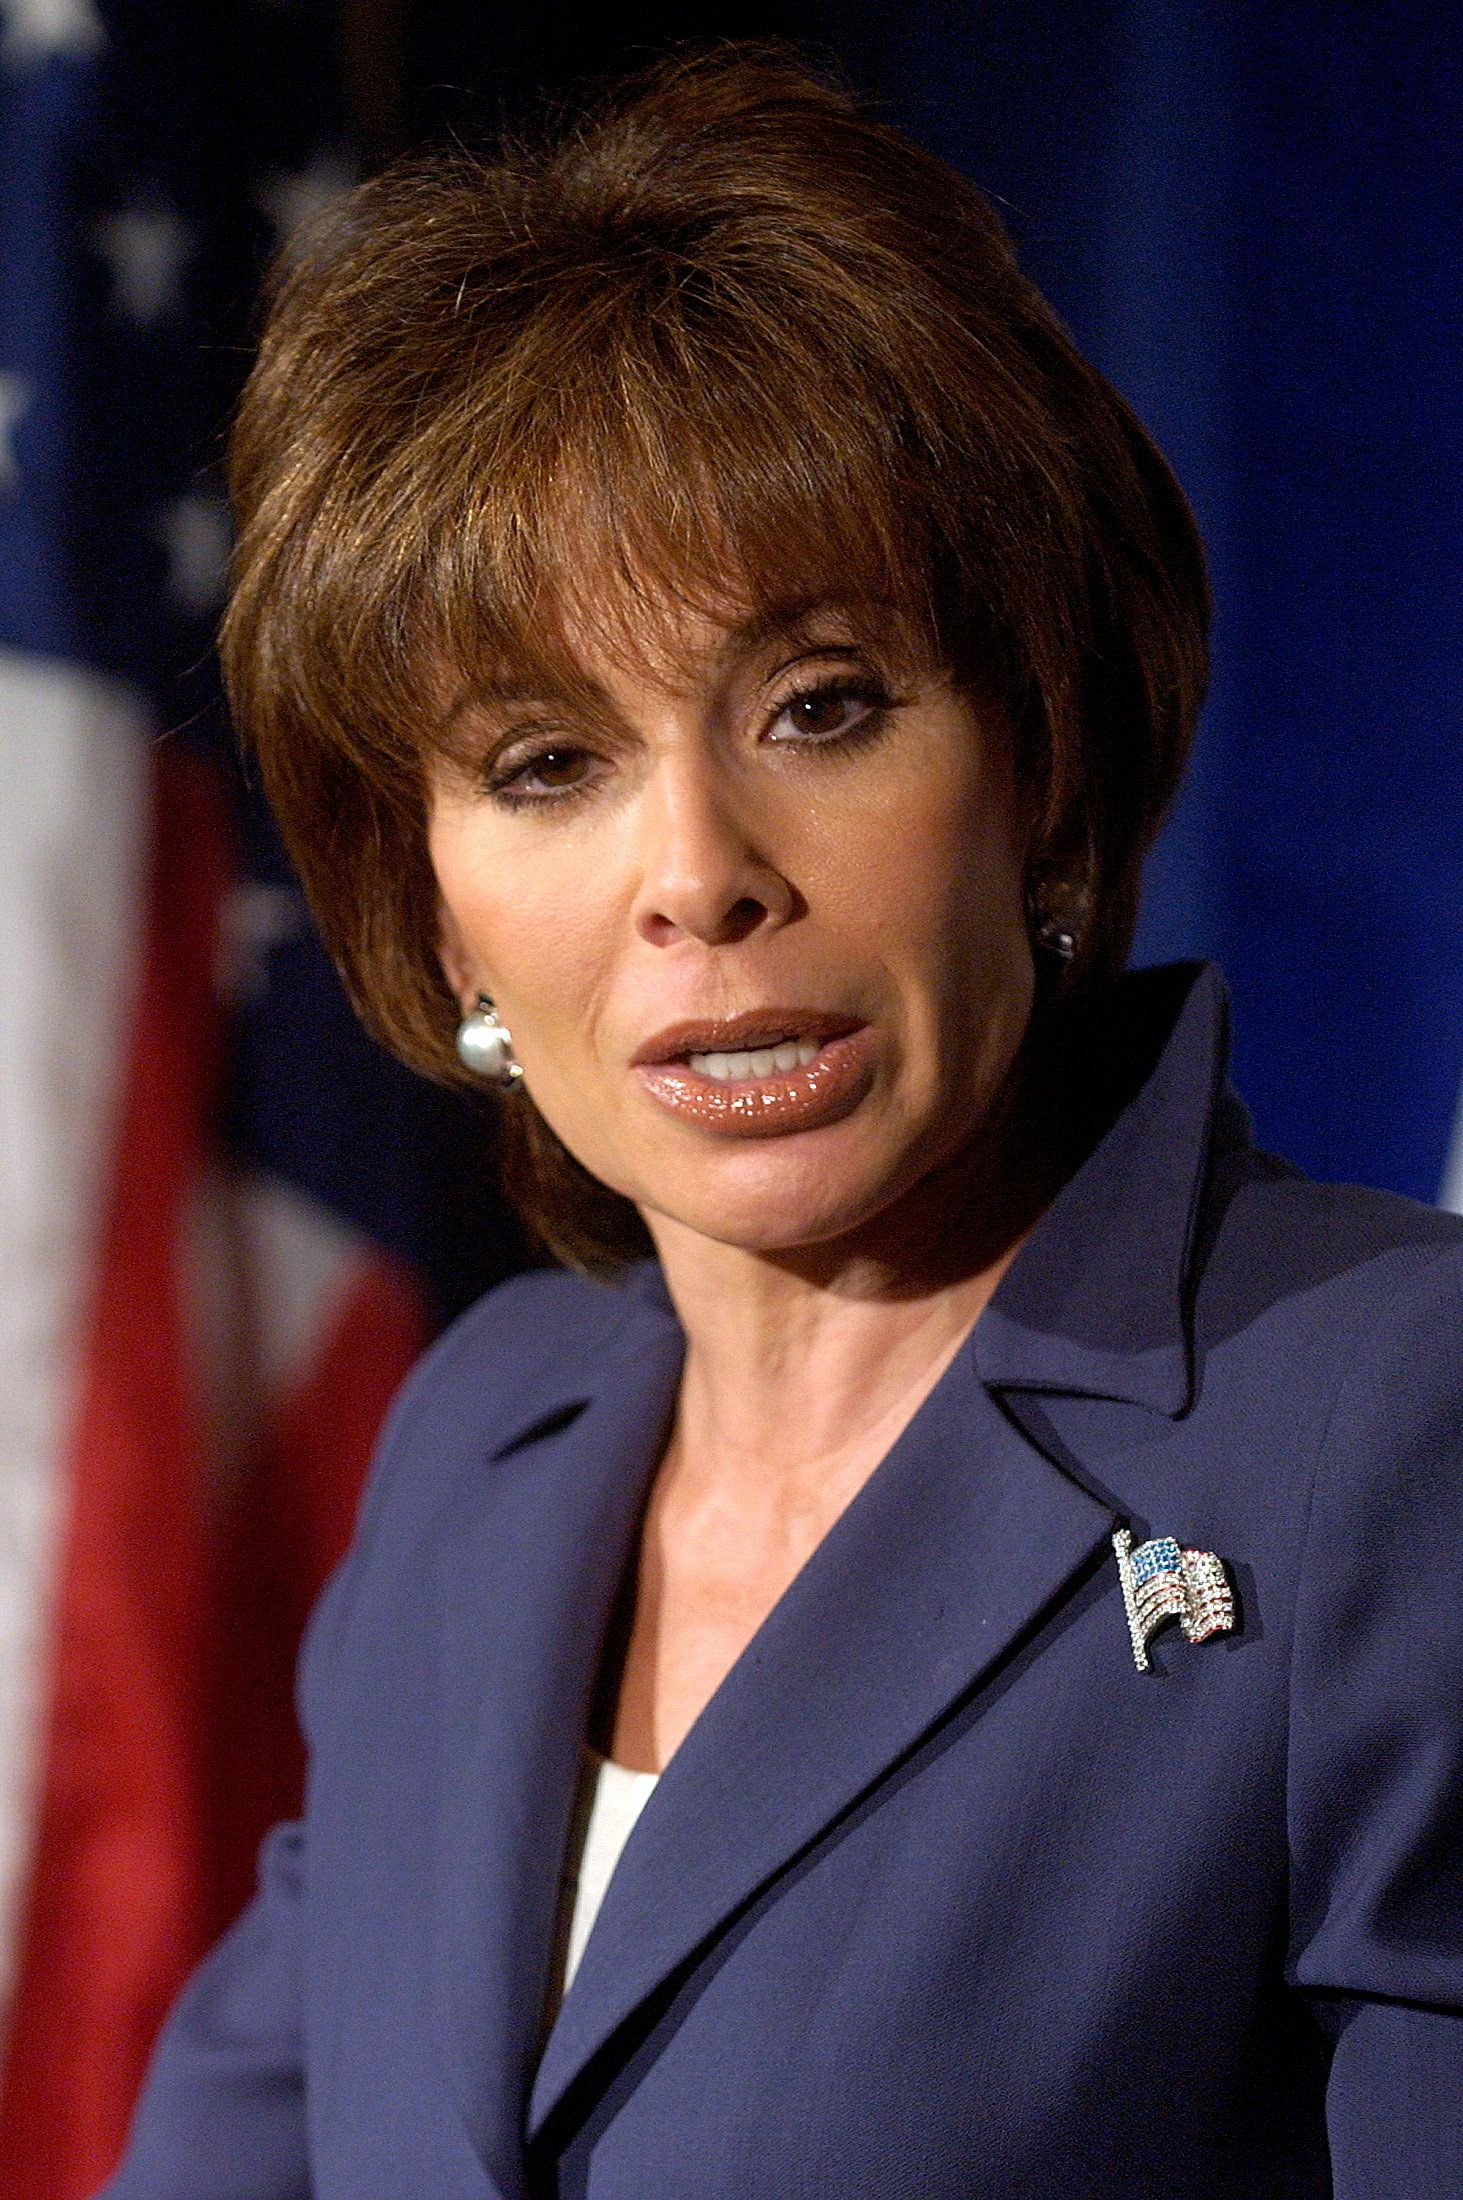 Jeanine Pirro, a high-profile district attorney from the New York suburbs, announces her candidacy for the Republication Party's nomination to challenge [Senator Hillary Clinton] for U.S. Senate in New York August 10, 2005. [Pirro has a reputation for combating domestic violence and prosecuting Internet paedophiles in Westchester County, has long been considered a possible Republican Senate candidate.]